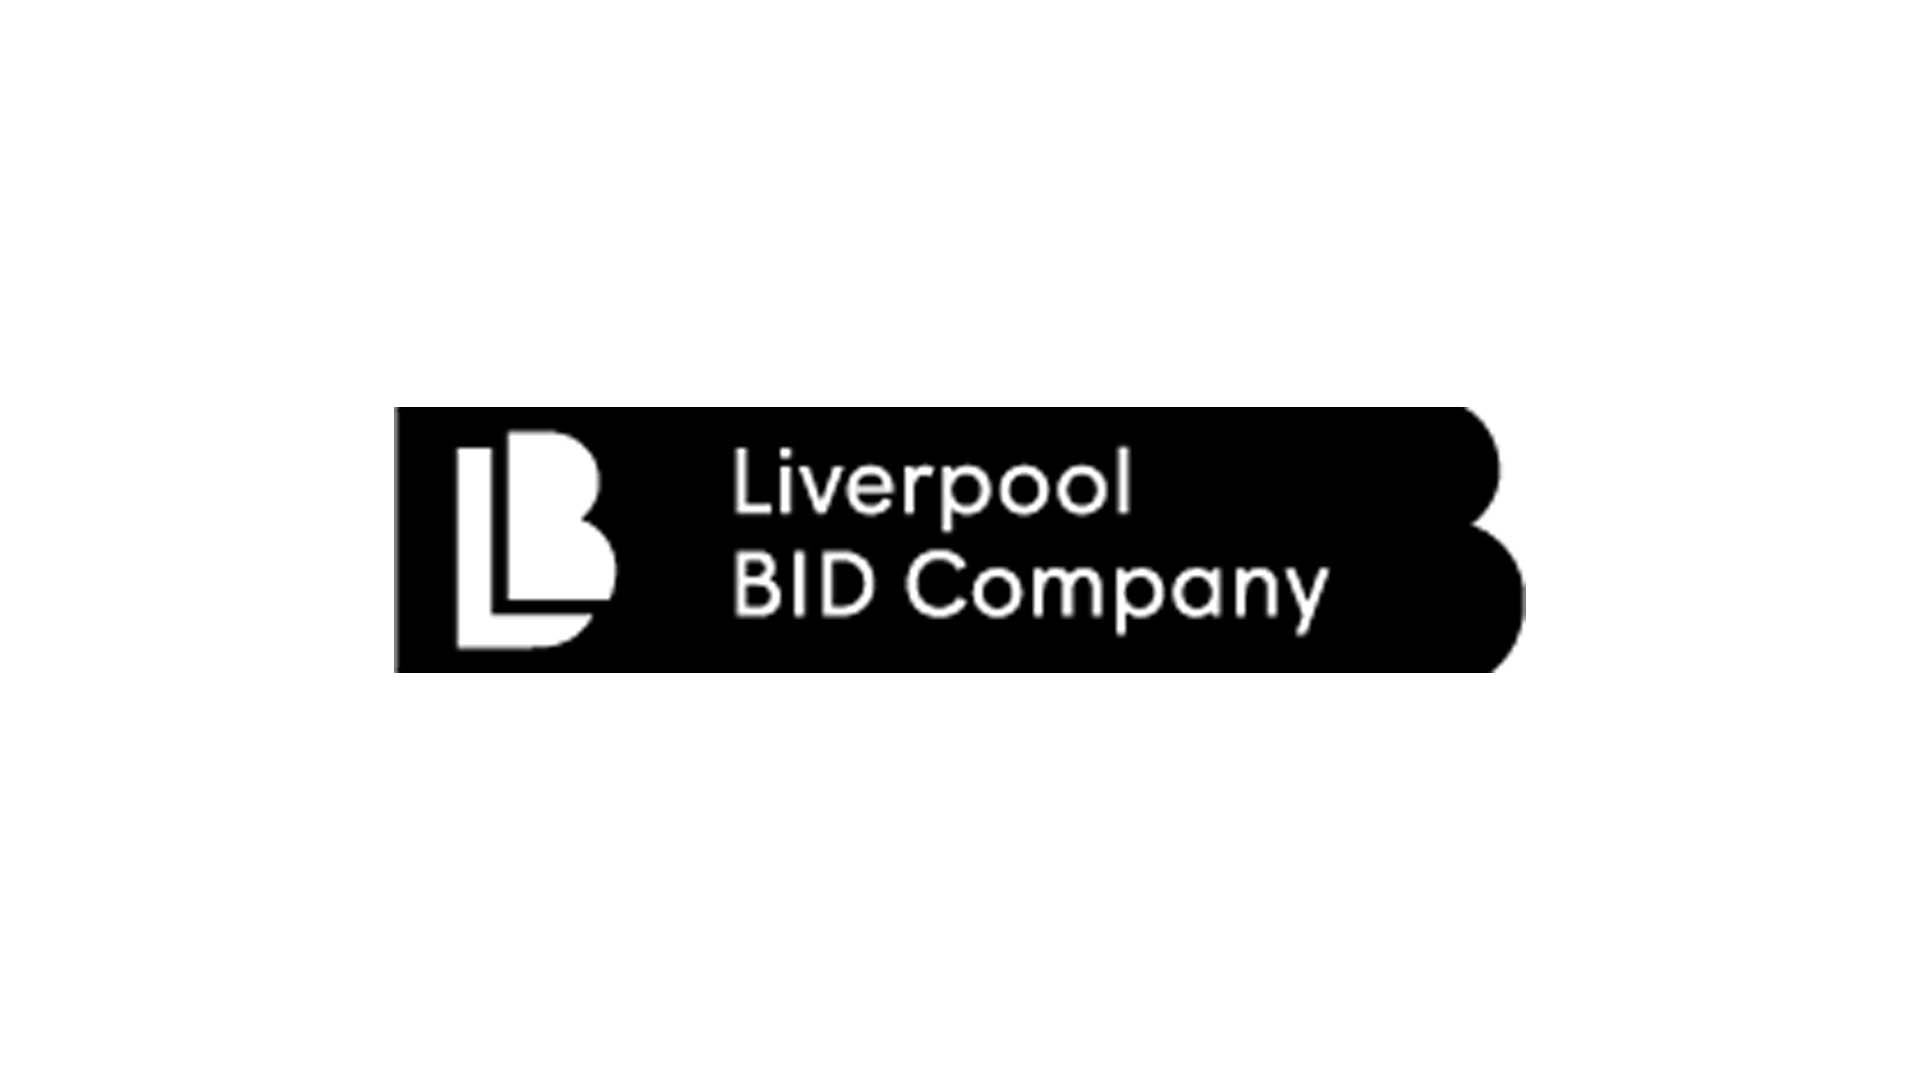 Liverpool Bid Company Statement Downtown In Business